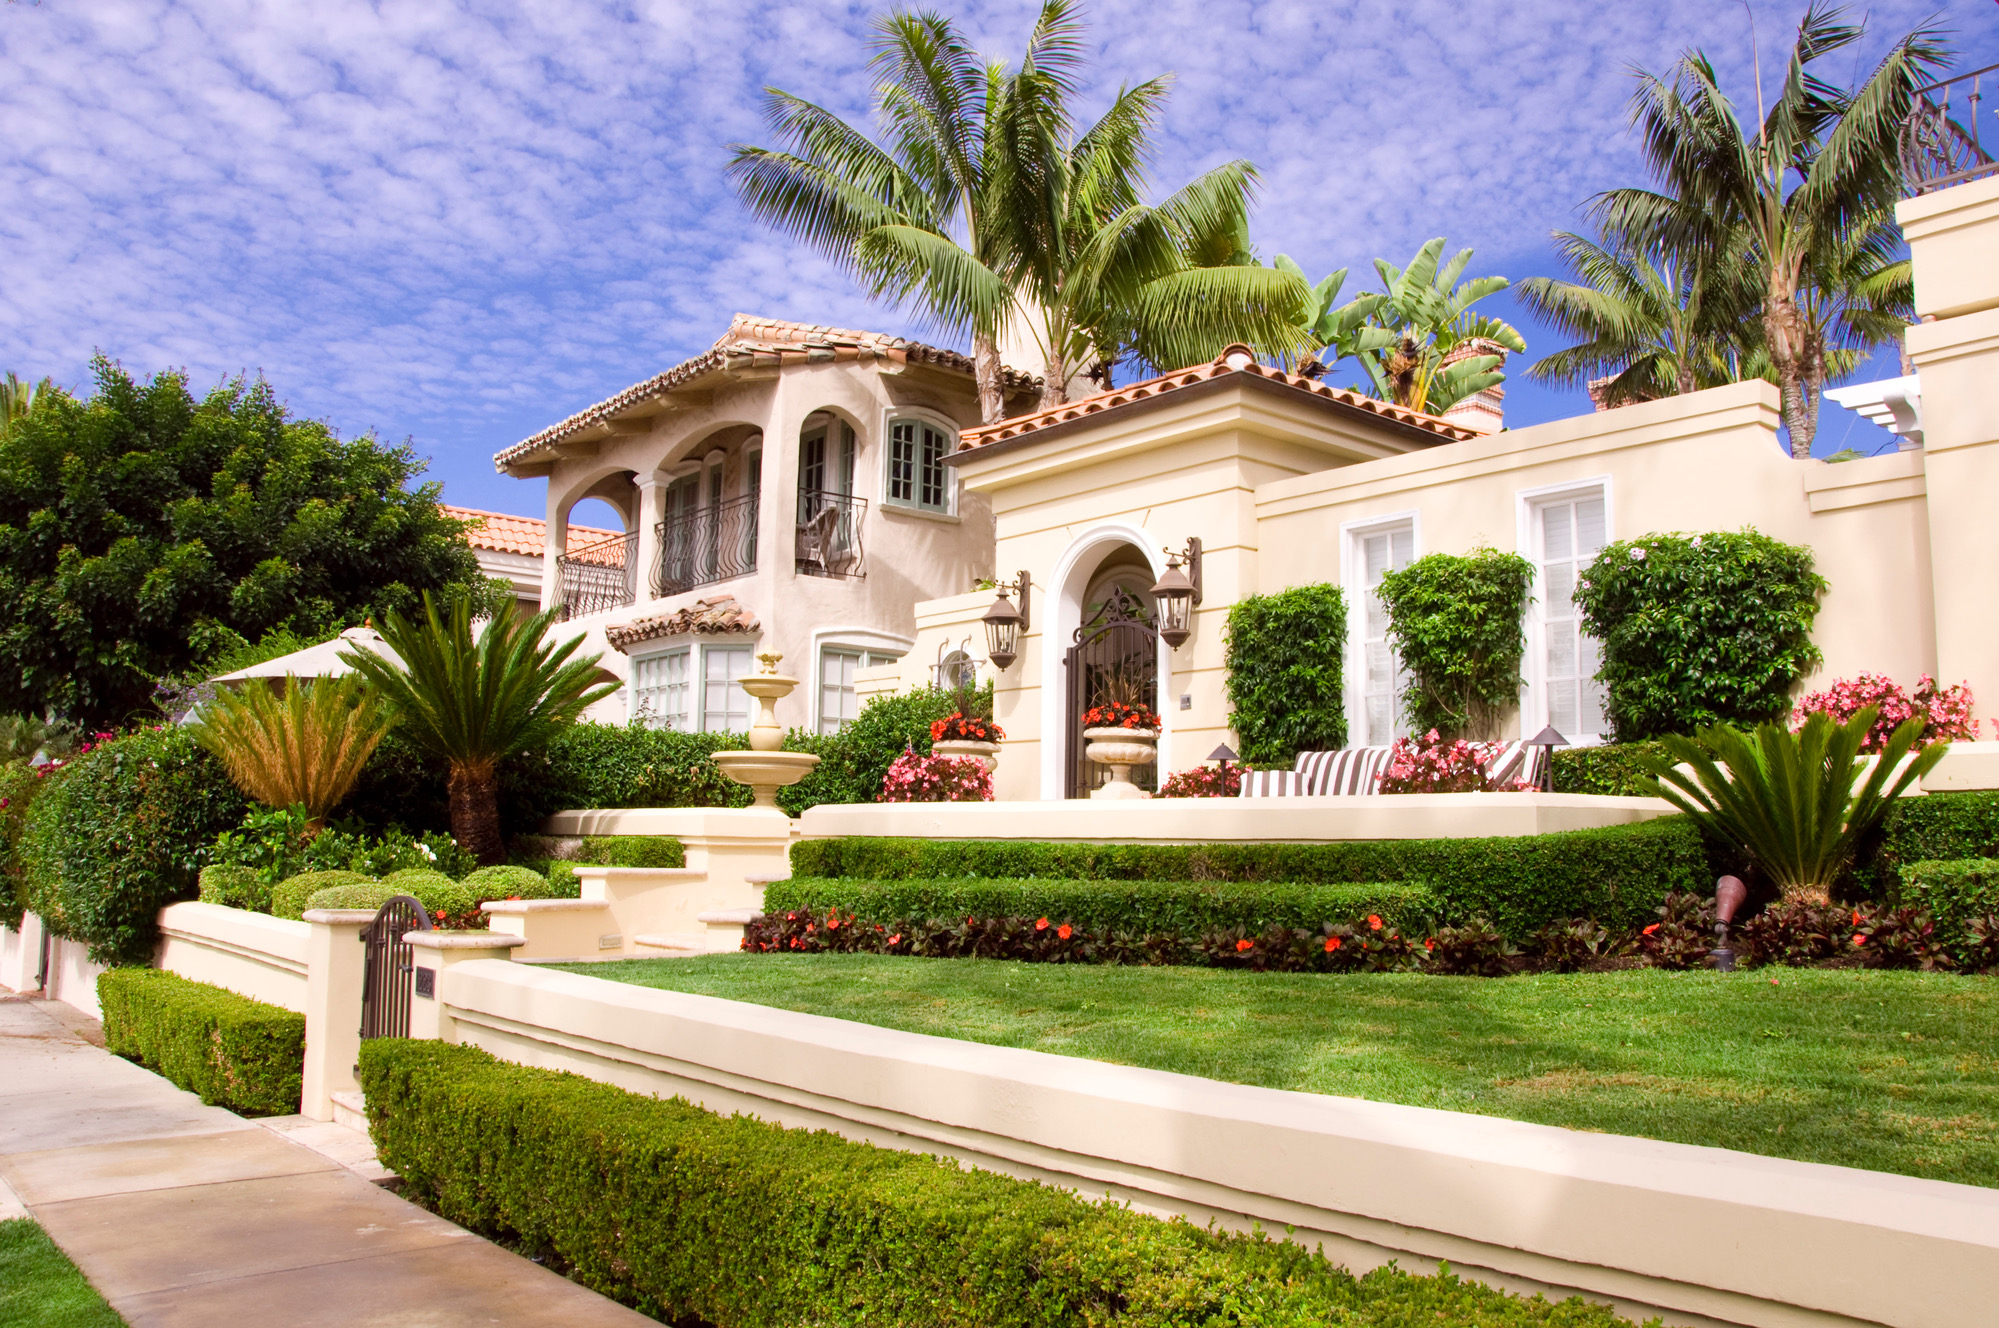 Where can I find New Homes in West Palm Beach Florida?